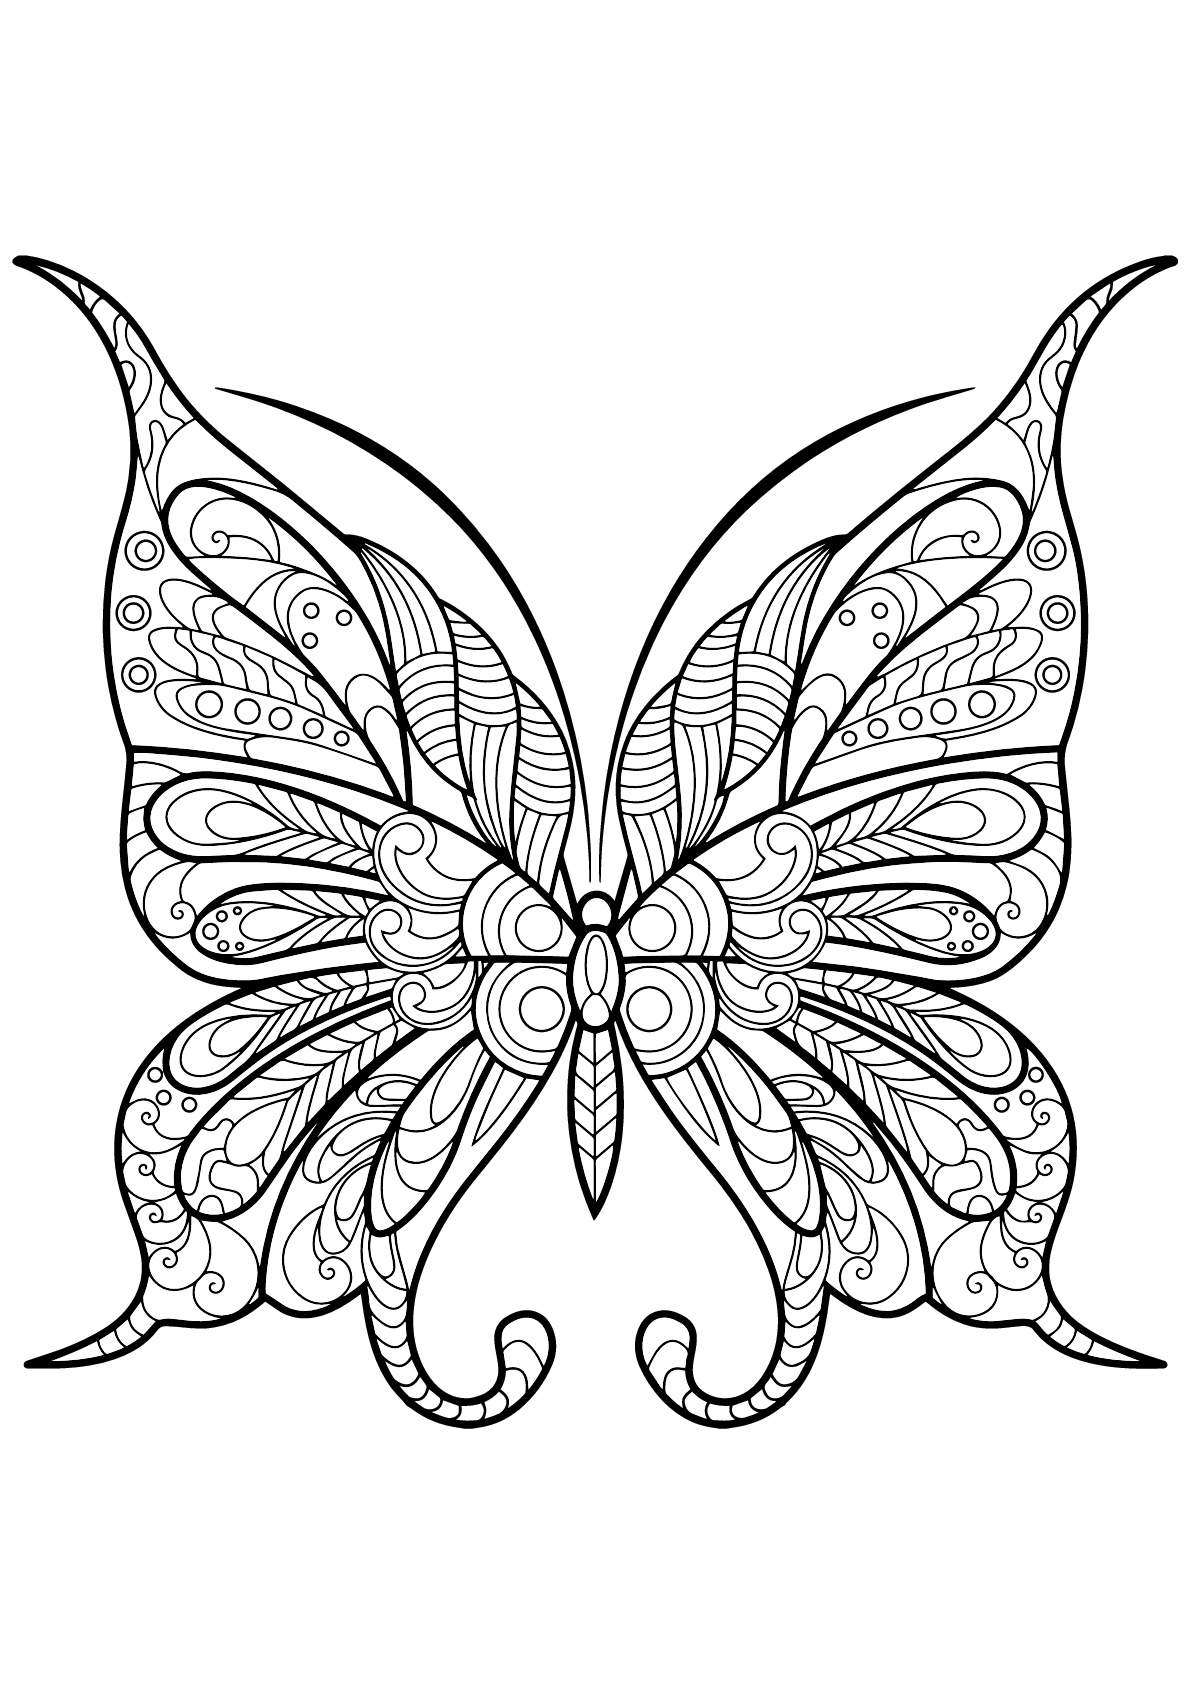 Butterflies to download for free - Butterflies Kids Coloring Pages